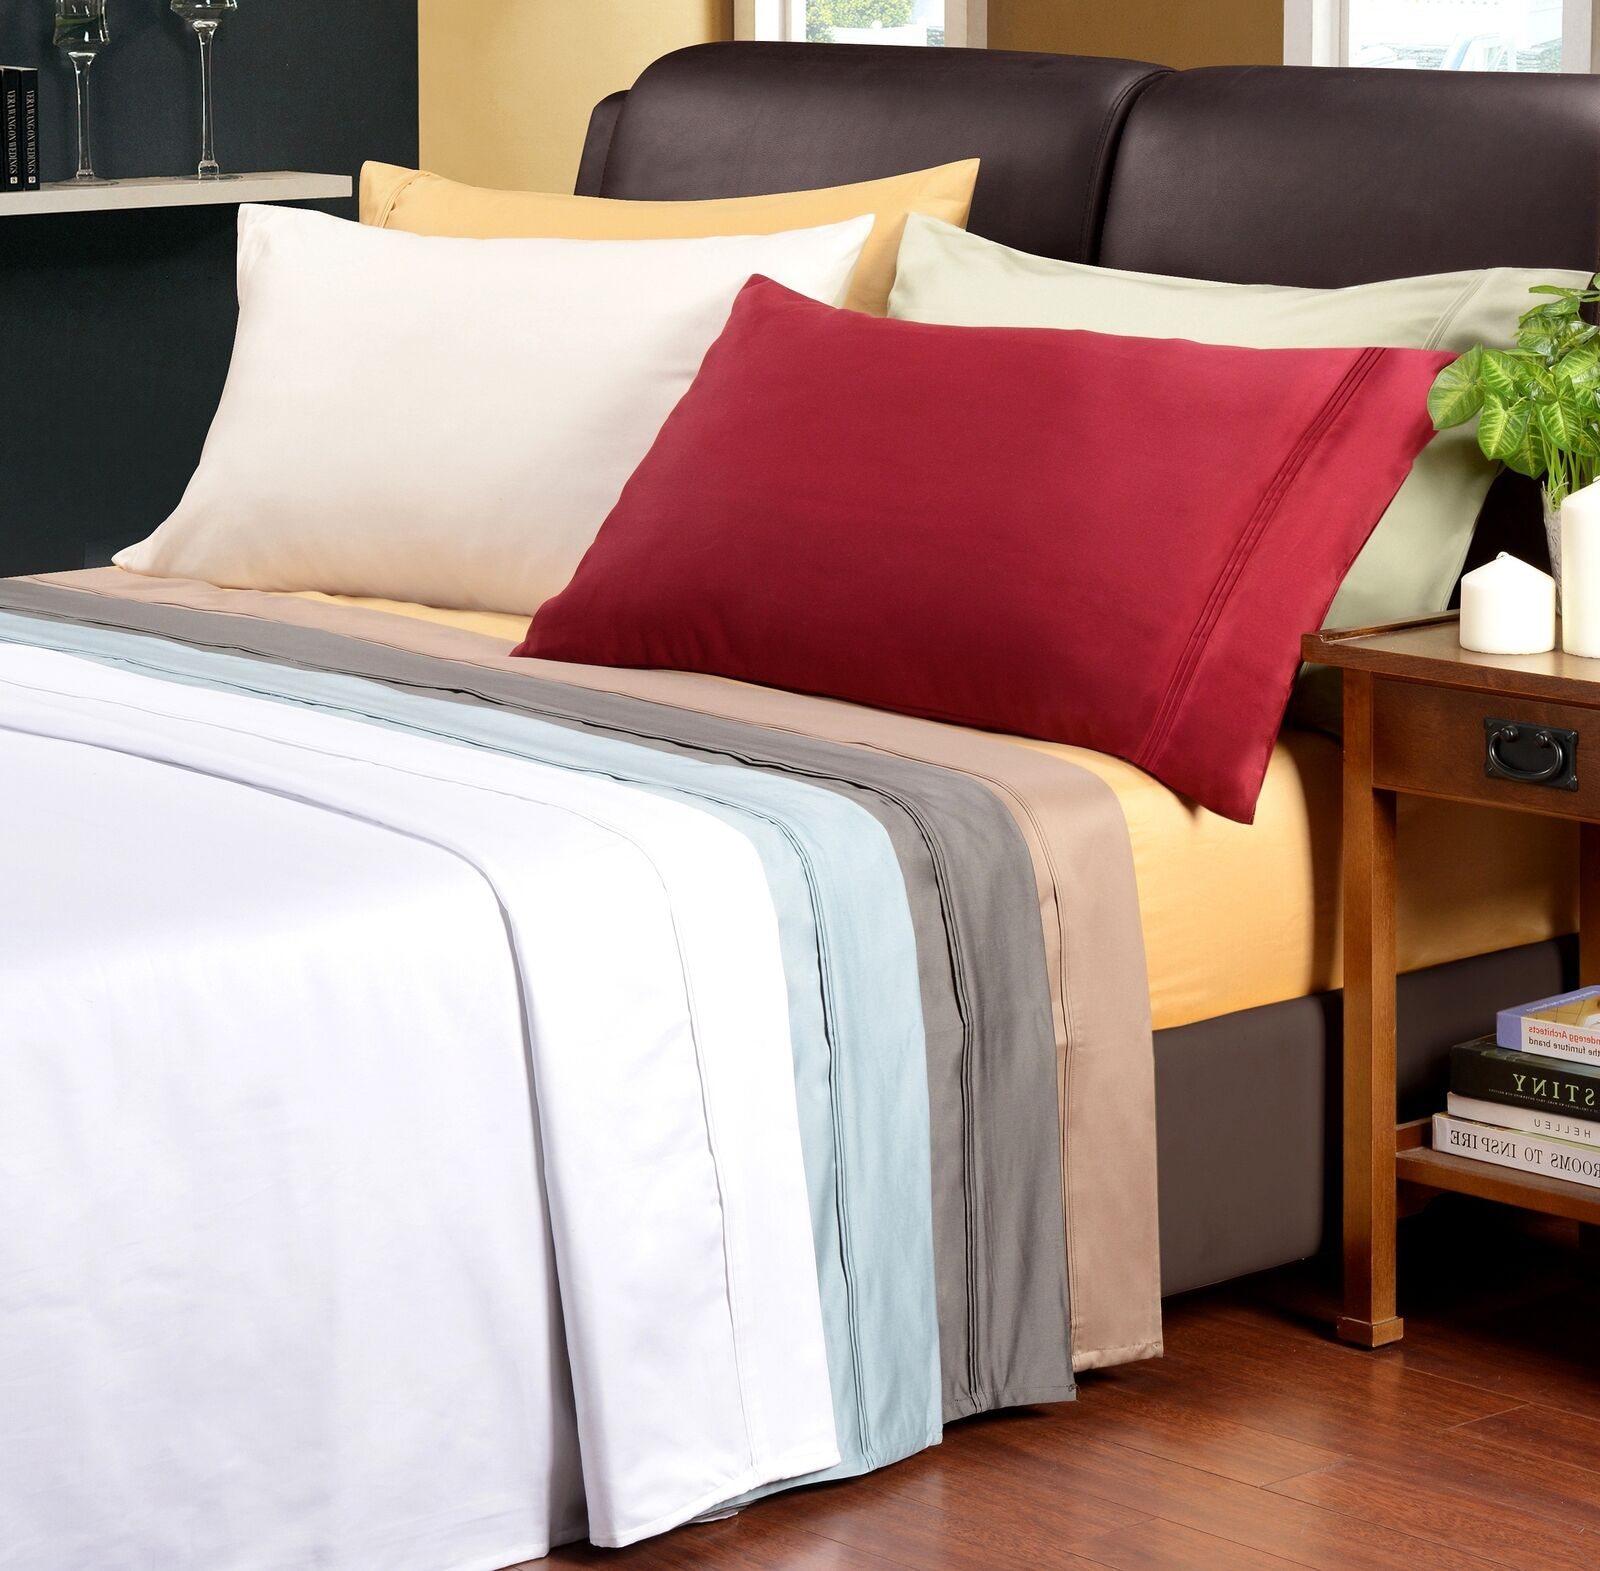 Luxurious 1500-Thread-Count Sheet Set, 100% Egyptian Cotton, 9 Colorees